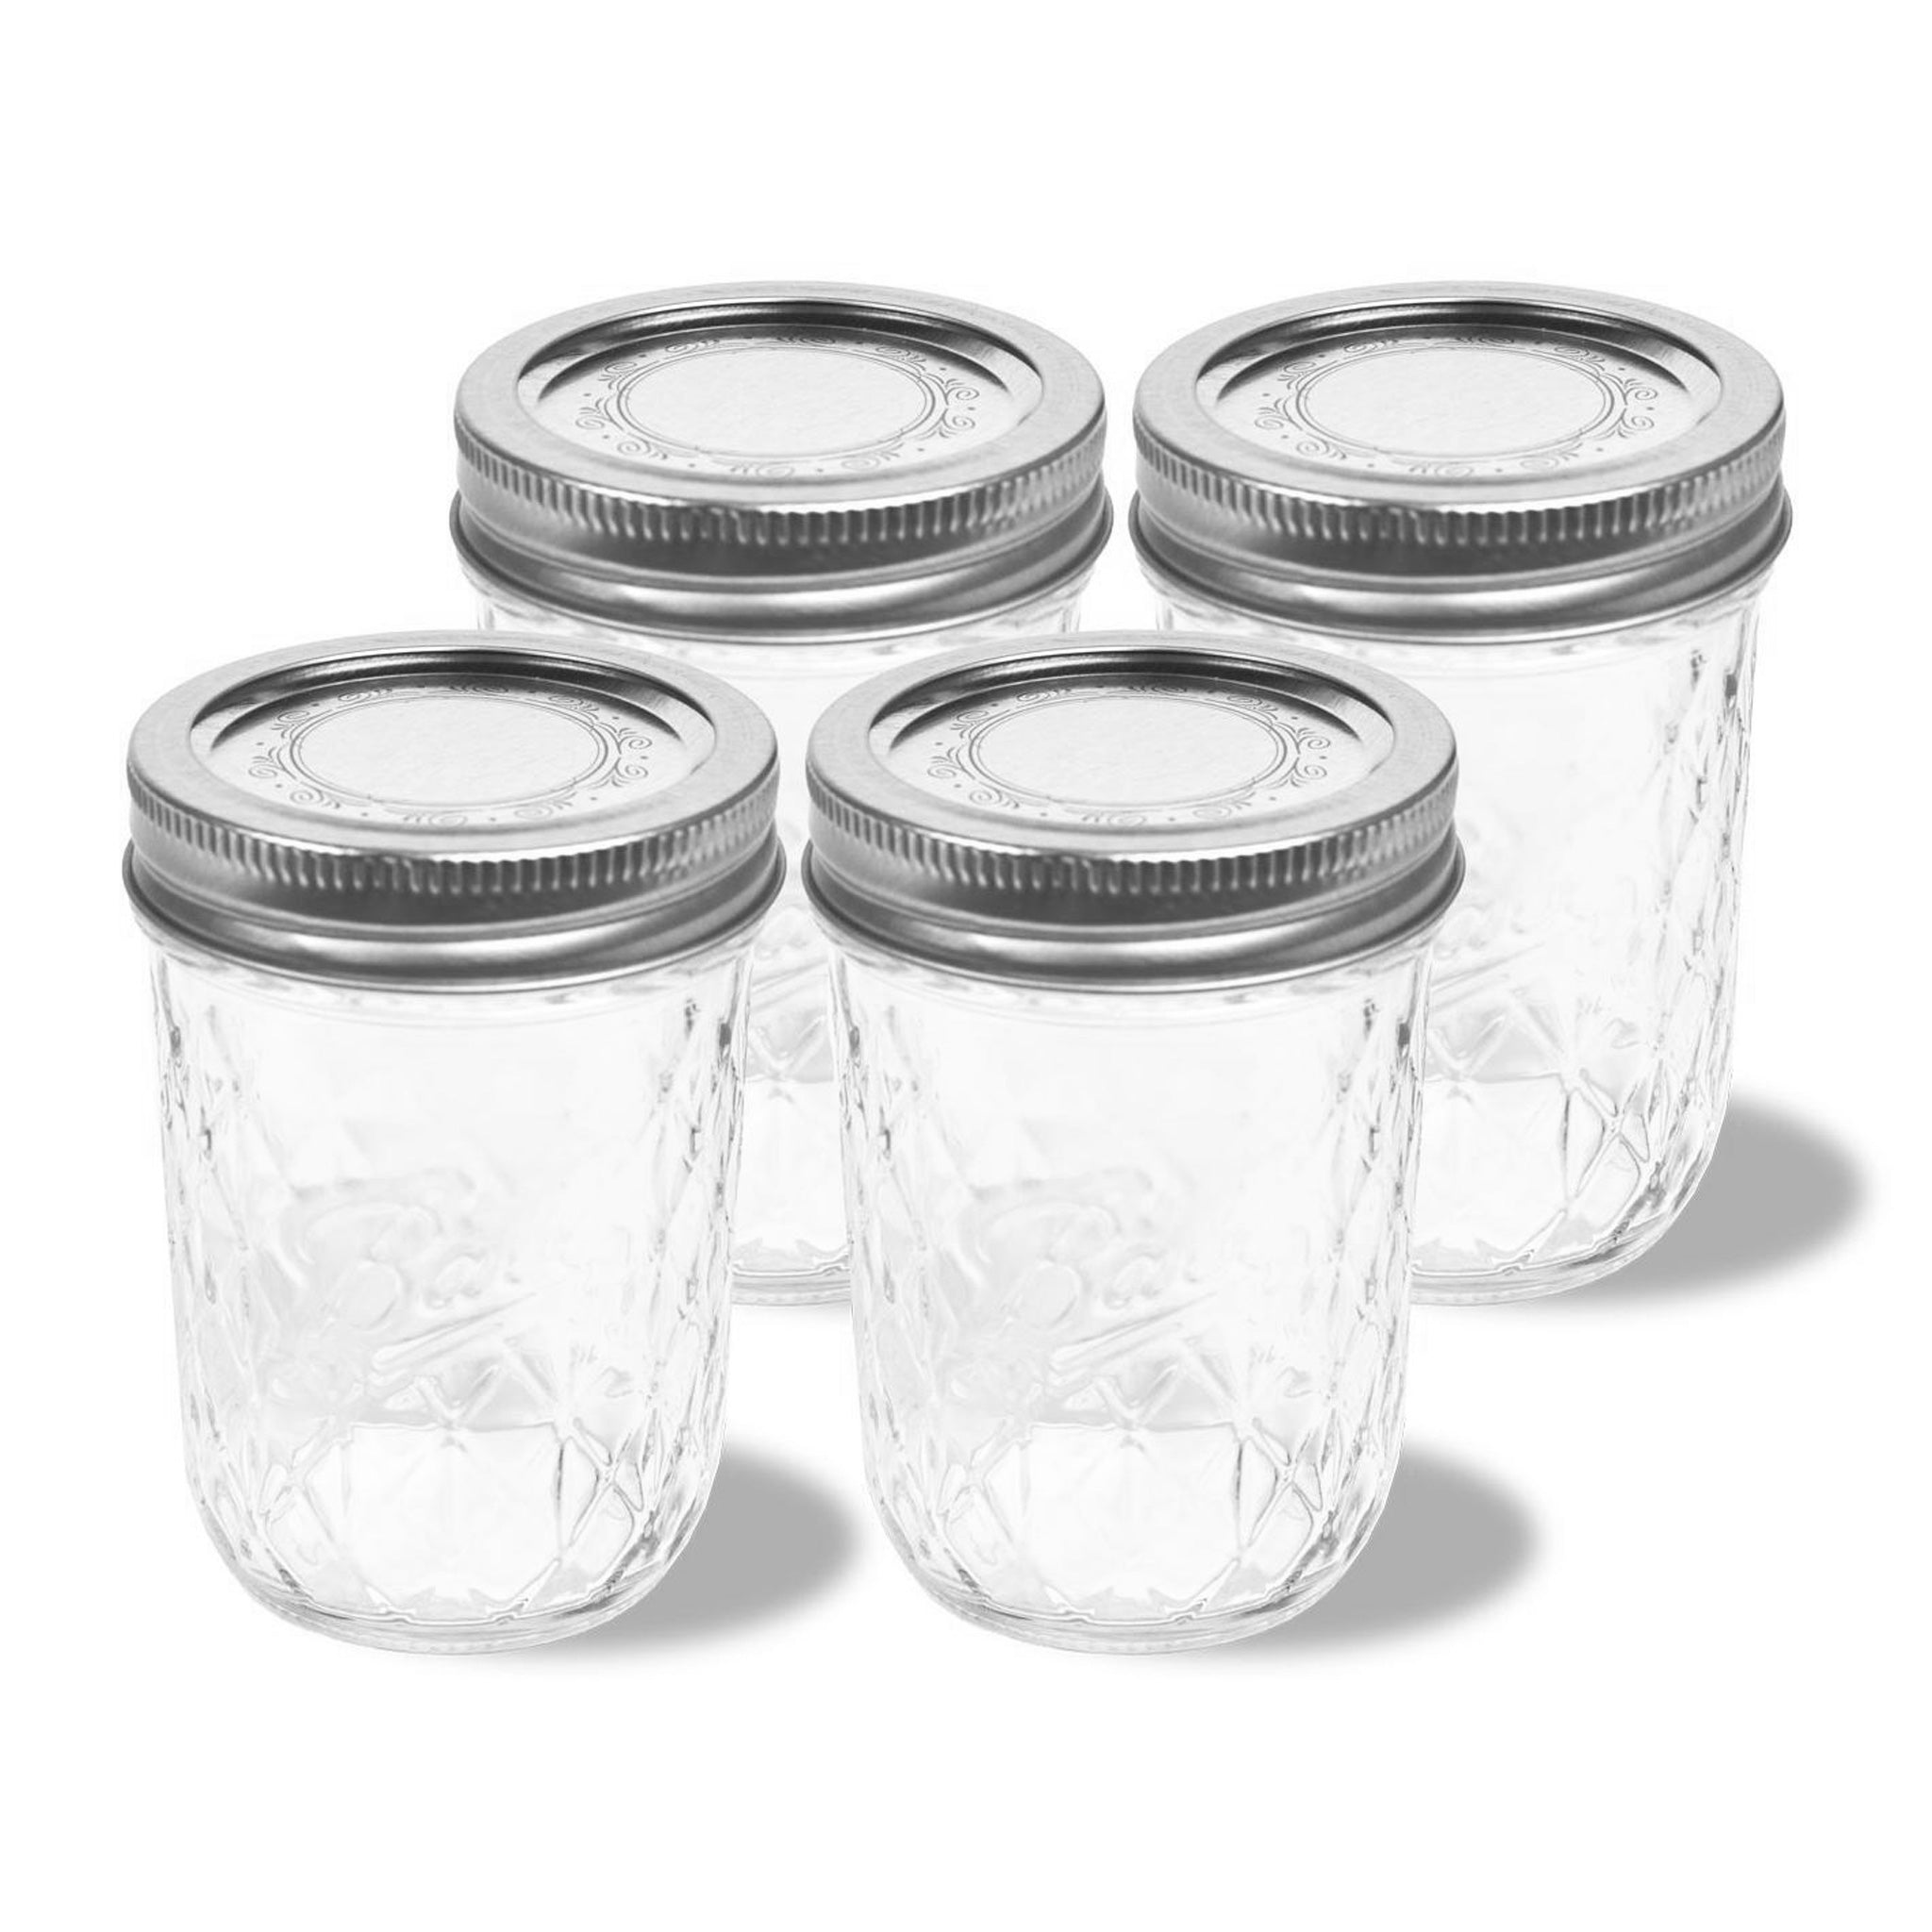 4-Pack Mason Jars (8 oz each) for the Personal Blender®. Blend up delicious smoothies, herbs, coffee beans, baby food and more. Store your recipes in these convenient and easy-to-use jars.